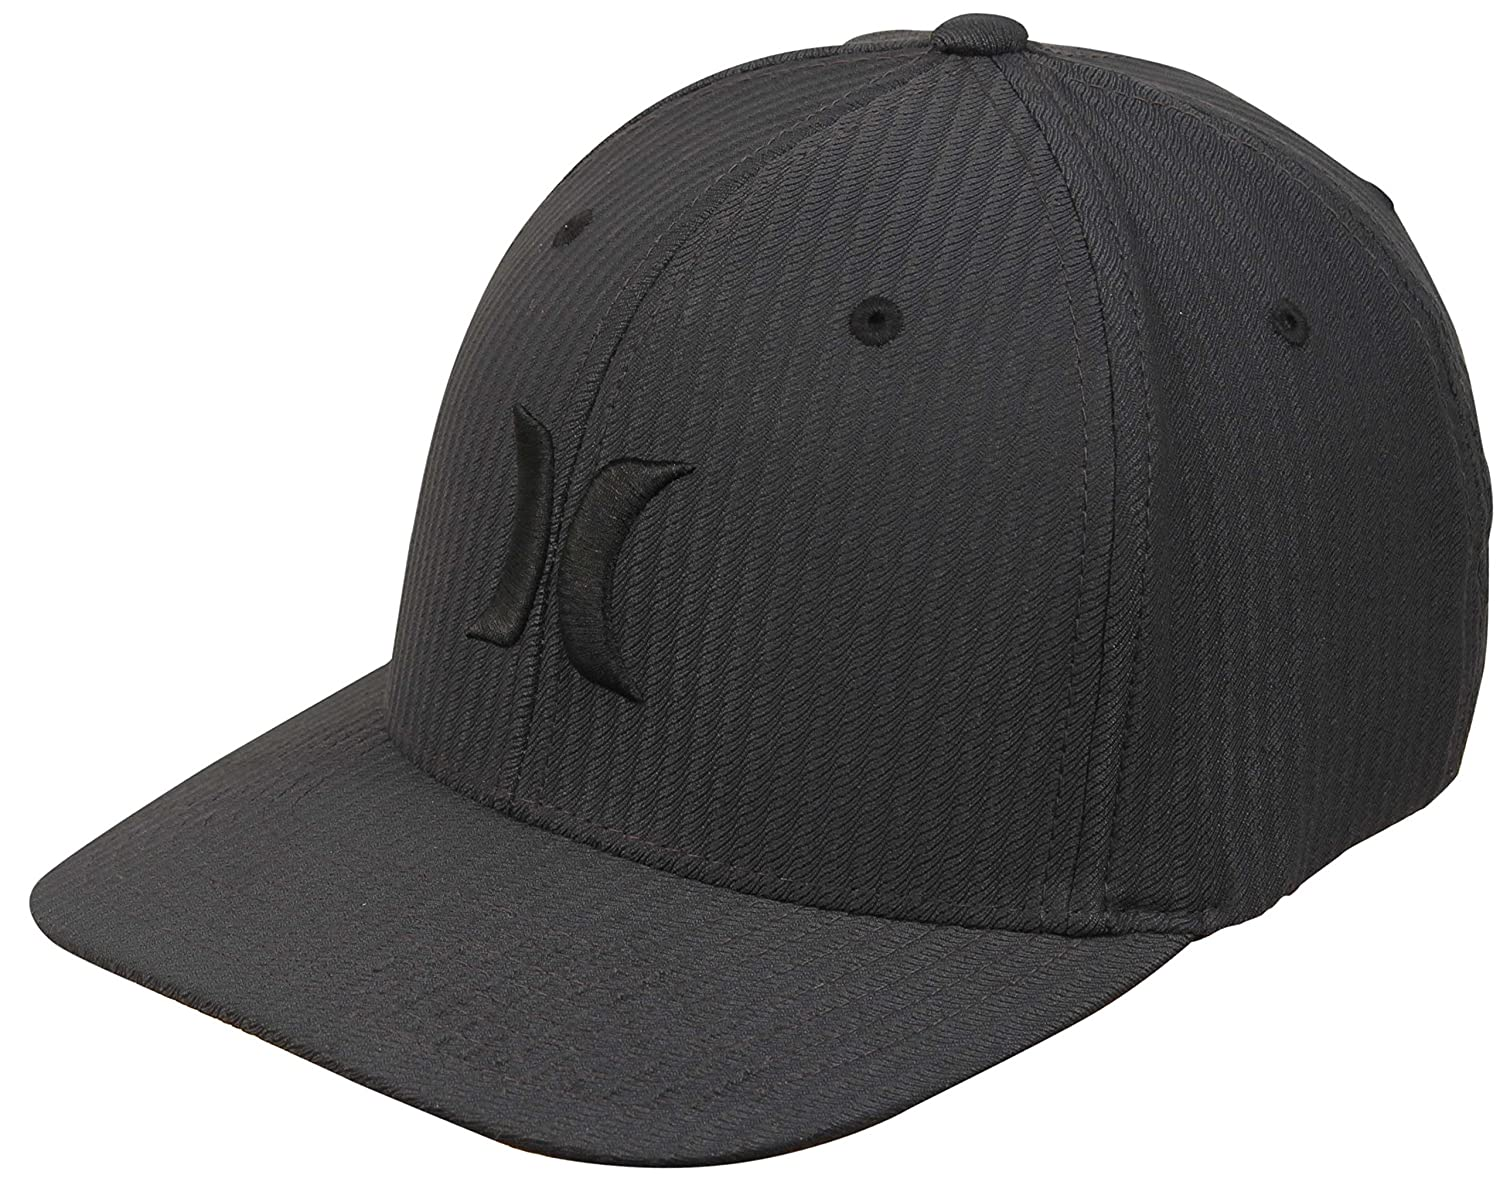 Hurley Men's Apparel Black Textures Baseball Cap Hurley Men's Apparel AA4476